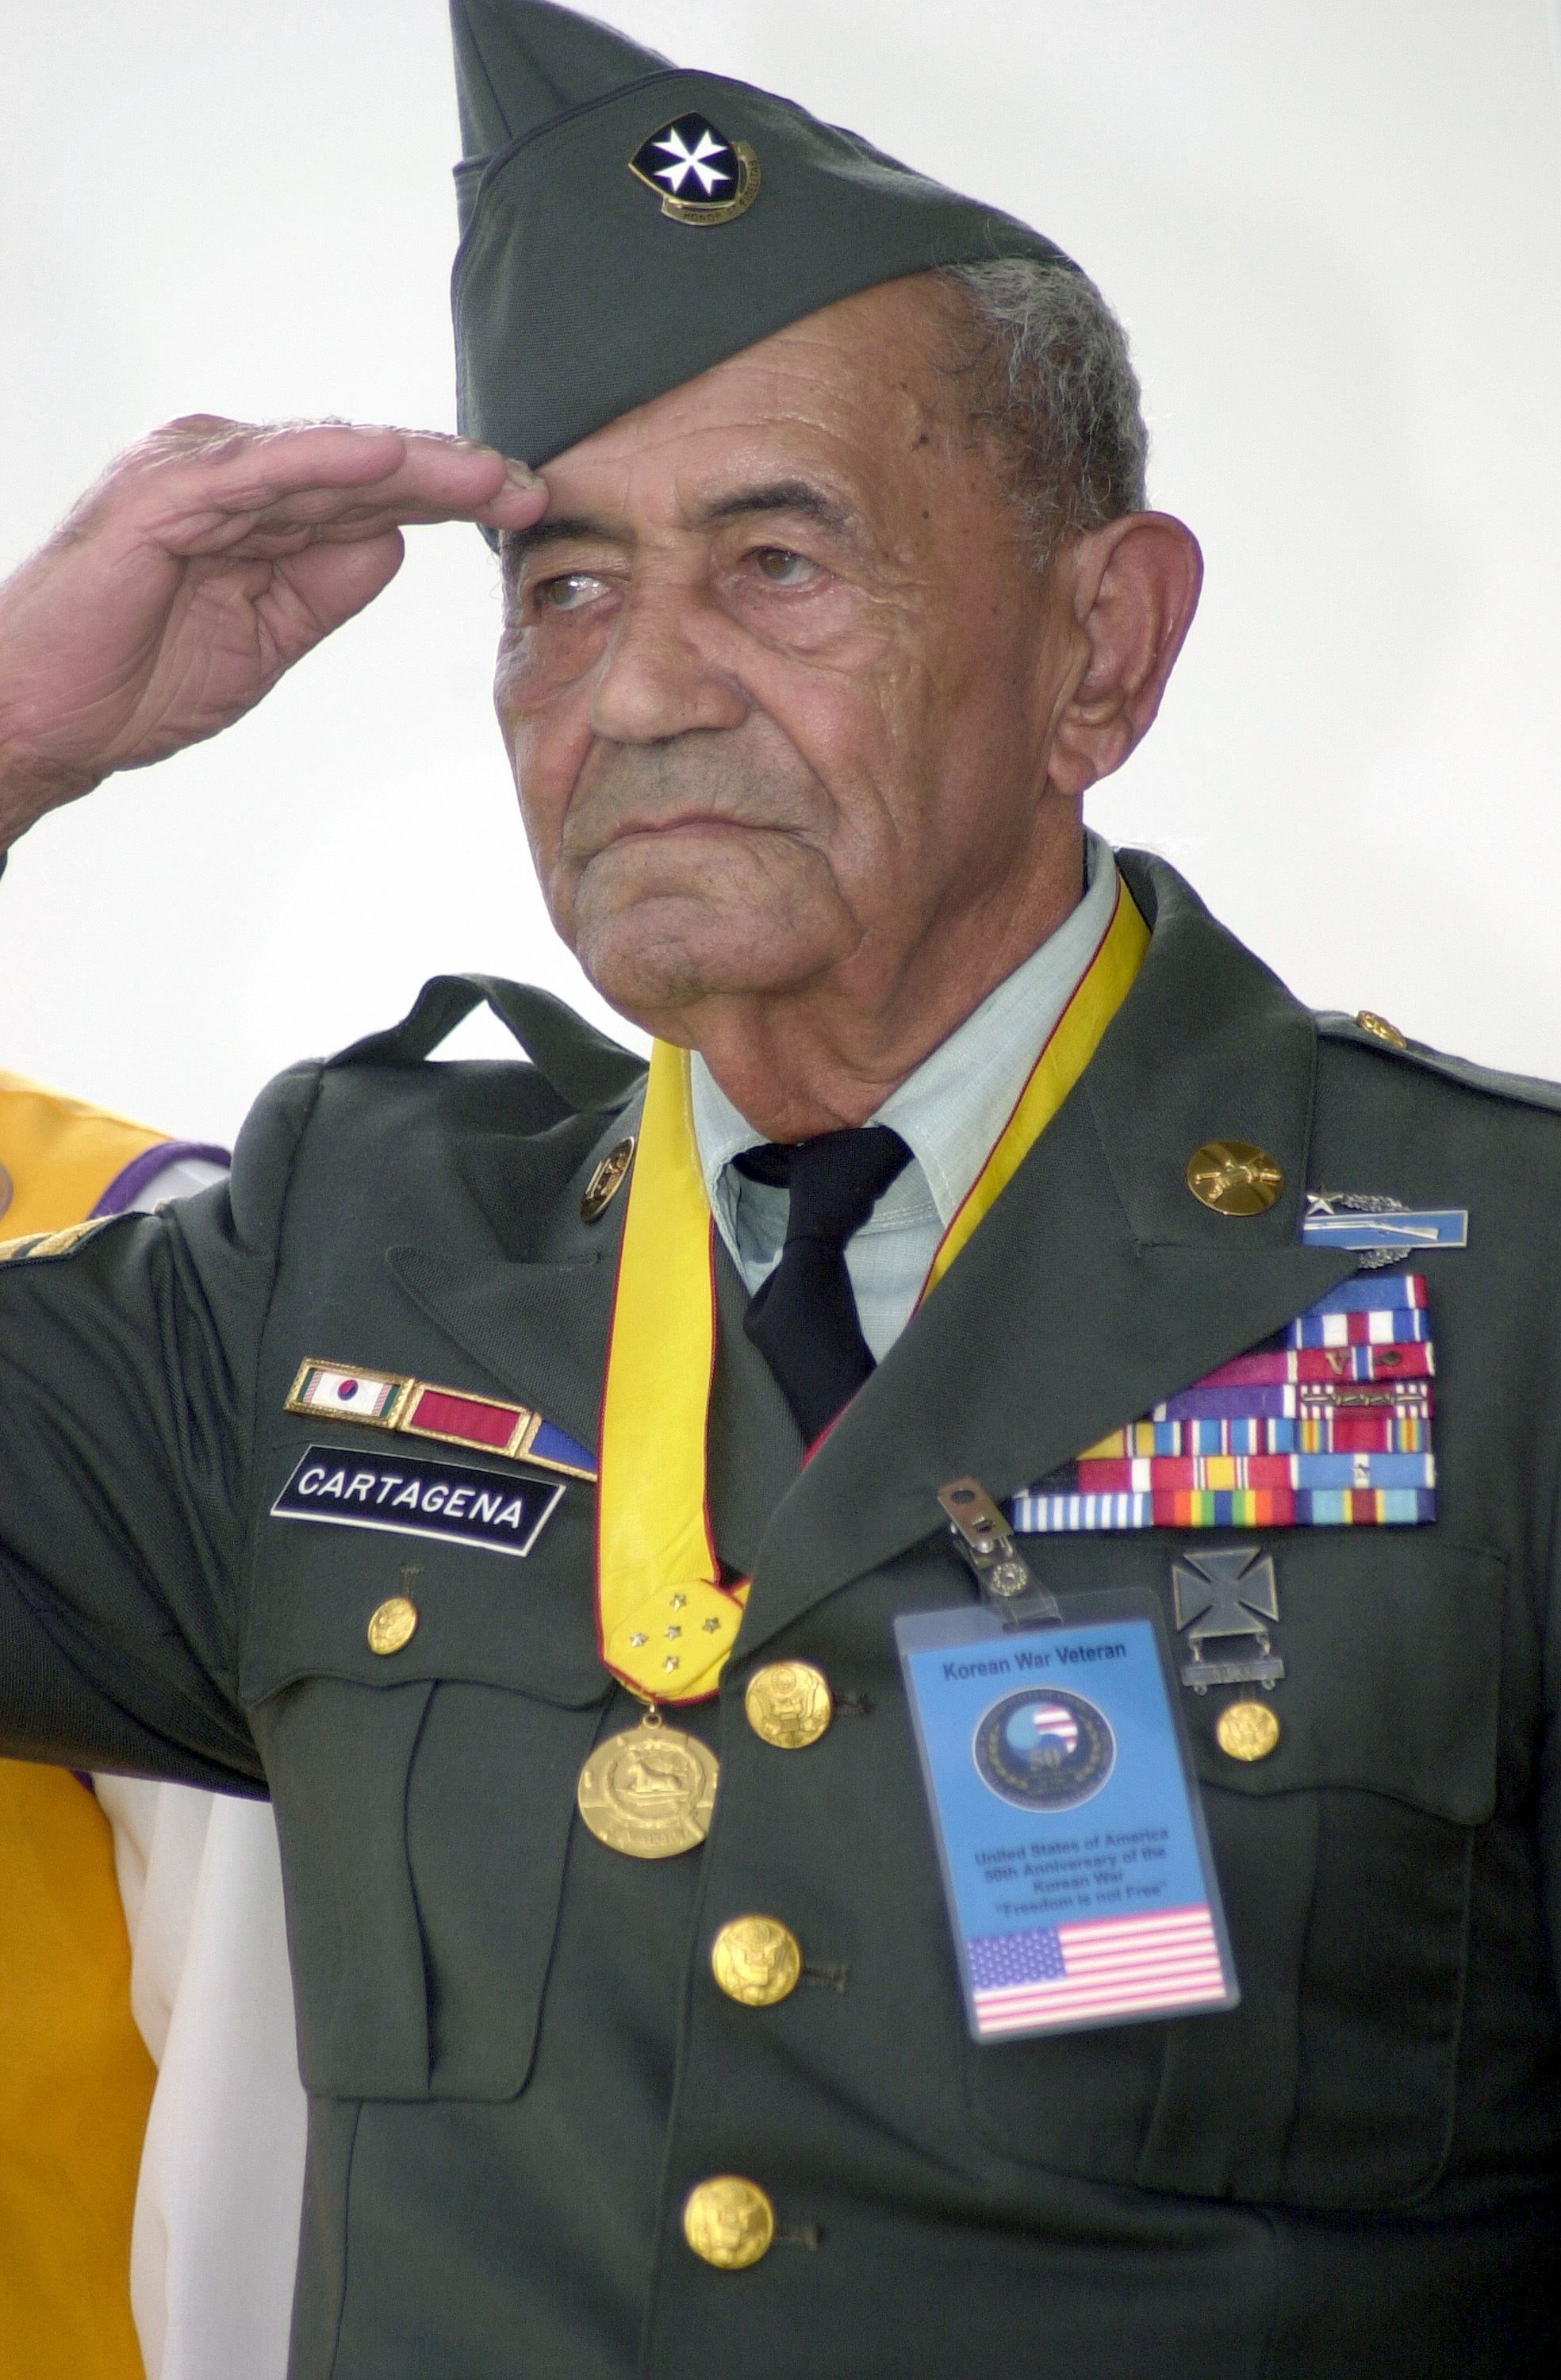 Korean War veteran, Sgt. 1st Class (ret) Modesto Cartagena, 12/02/2000. (National Archives Identifier: 6519402)